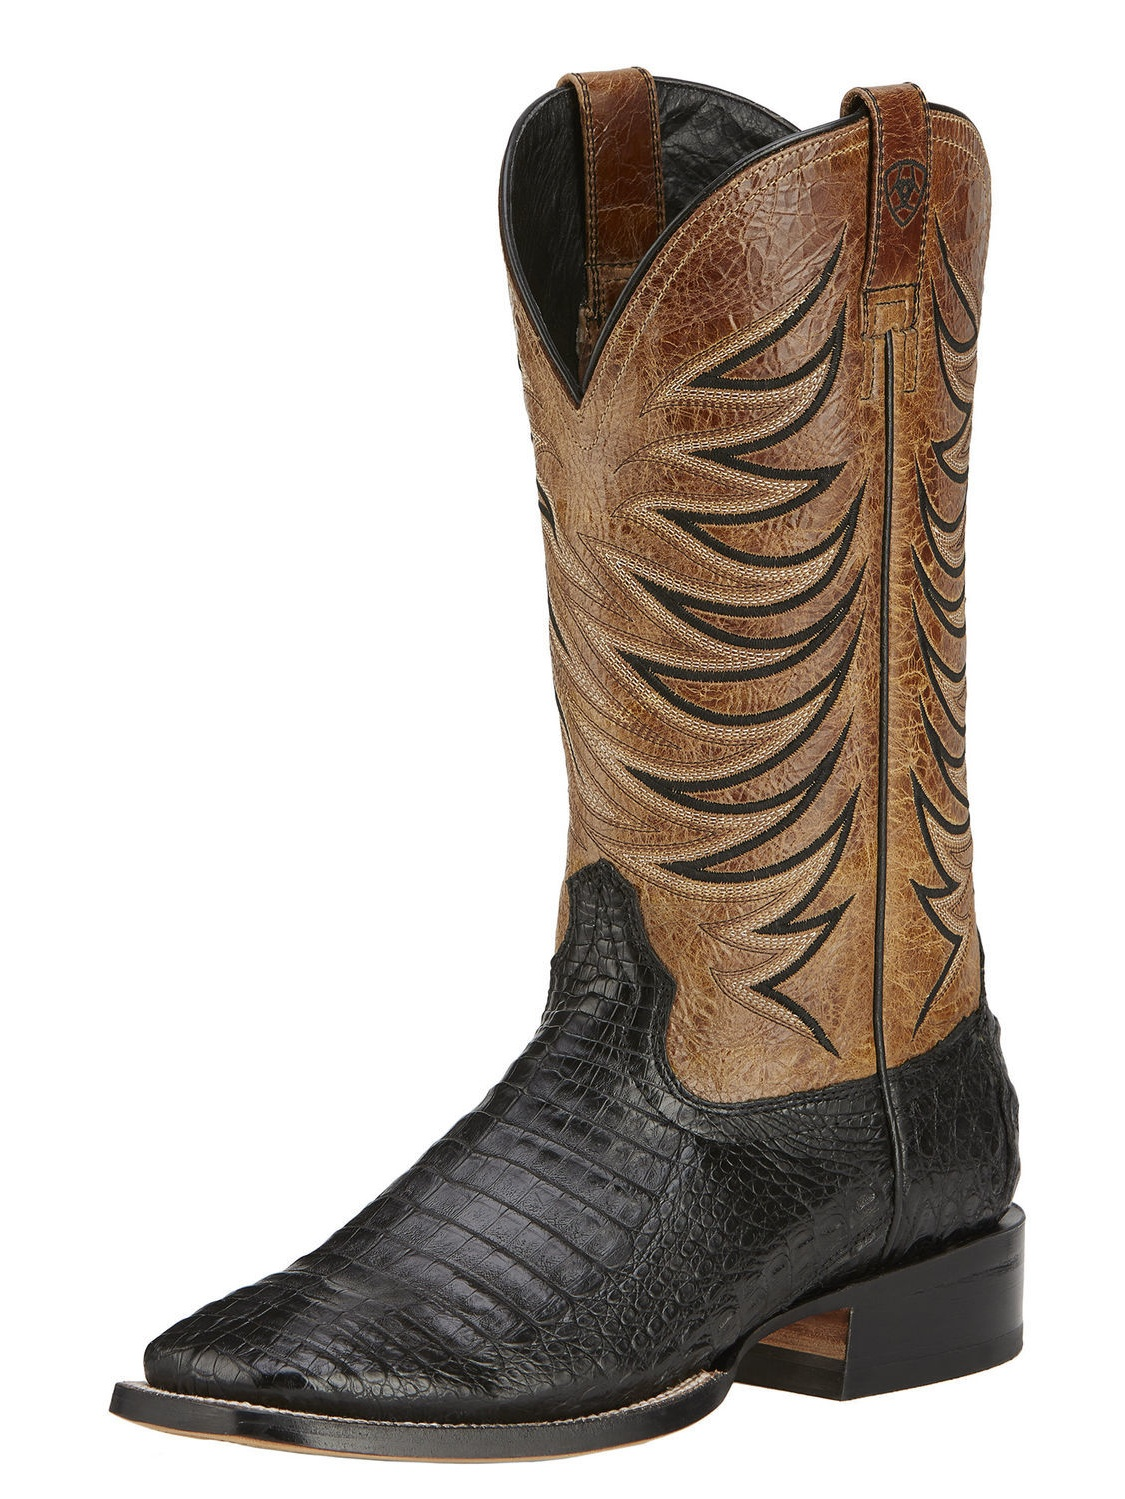 Ariat Fire Catcher Square Toe Leather Western Boot by Ariat